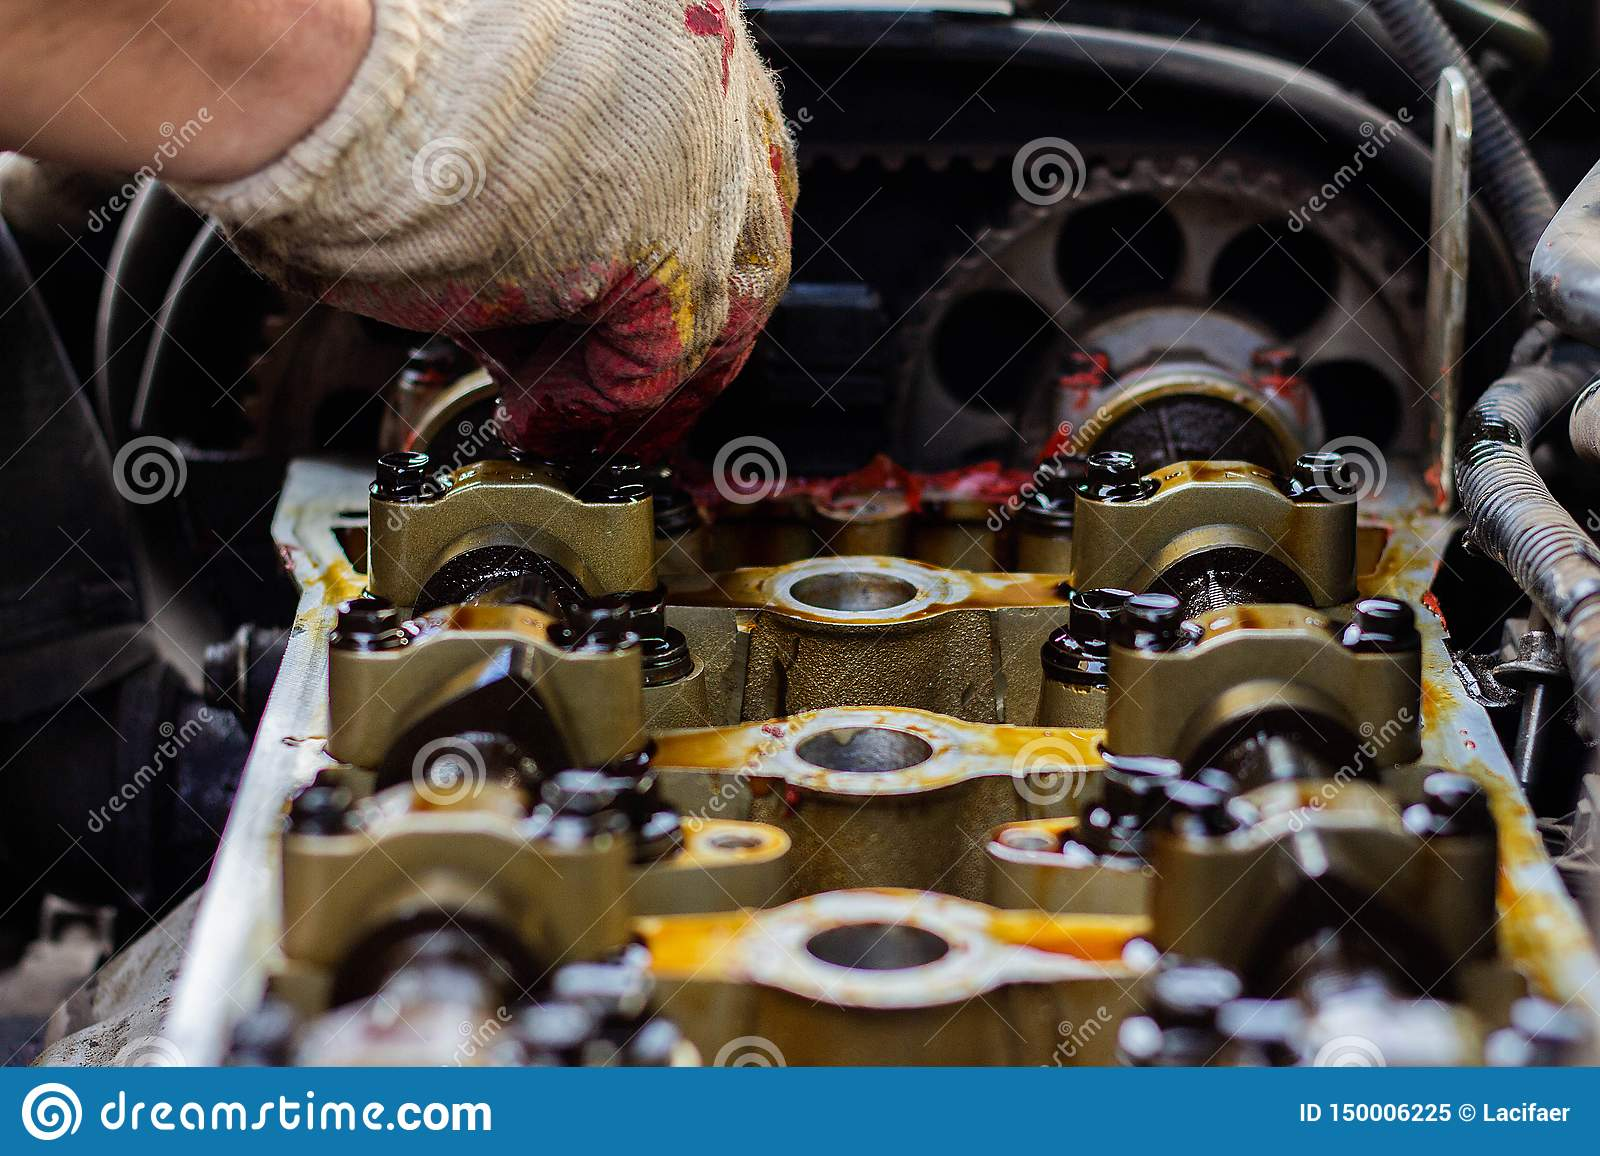 Disassembled The Internal Combustion Engine, The Hand Of The